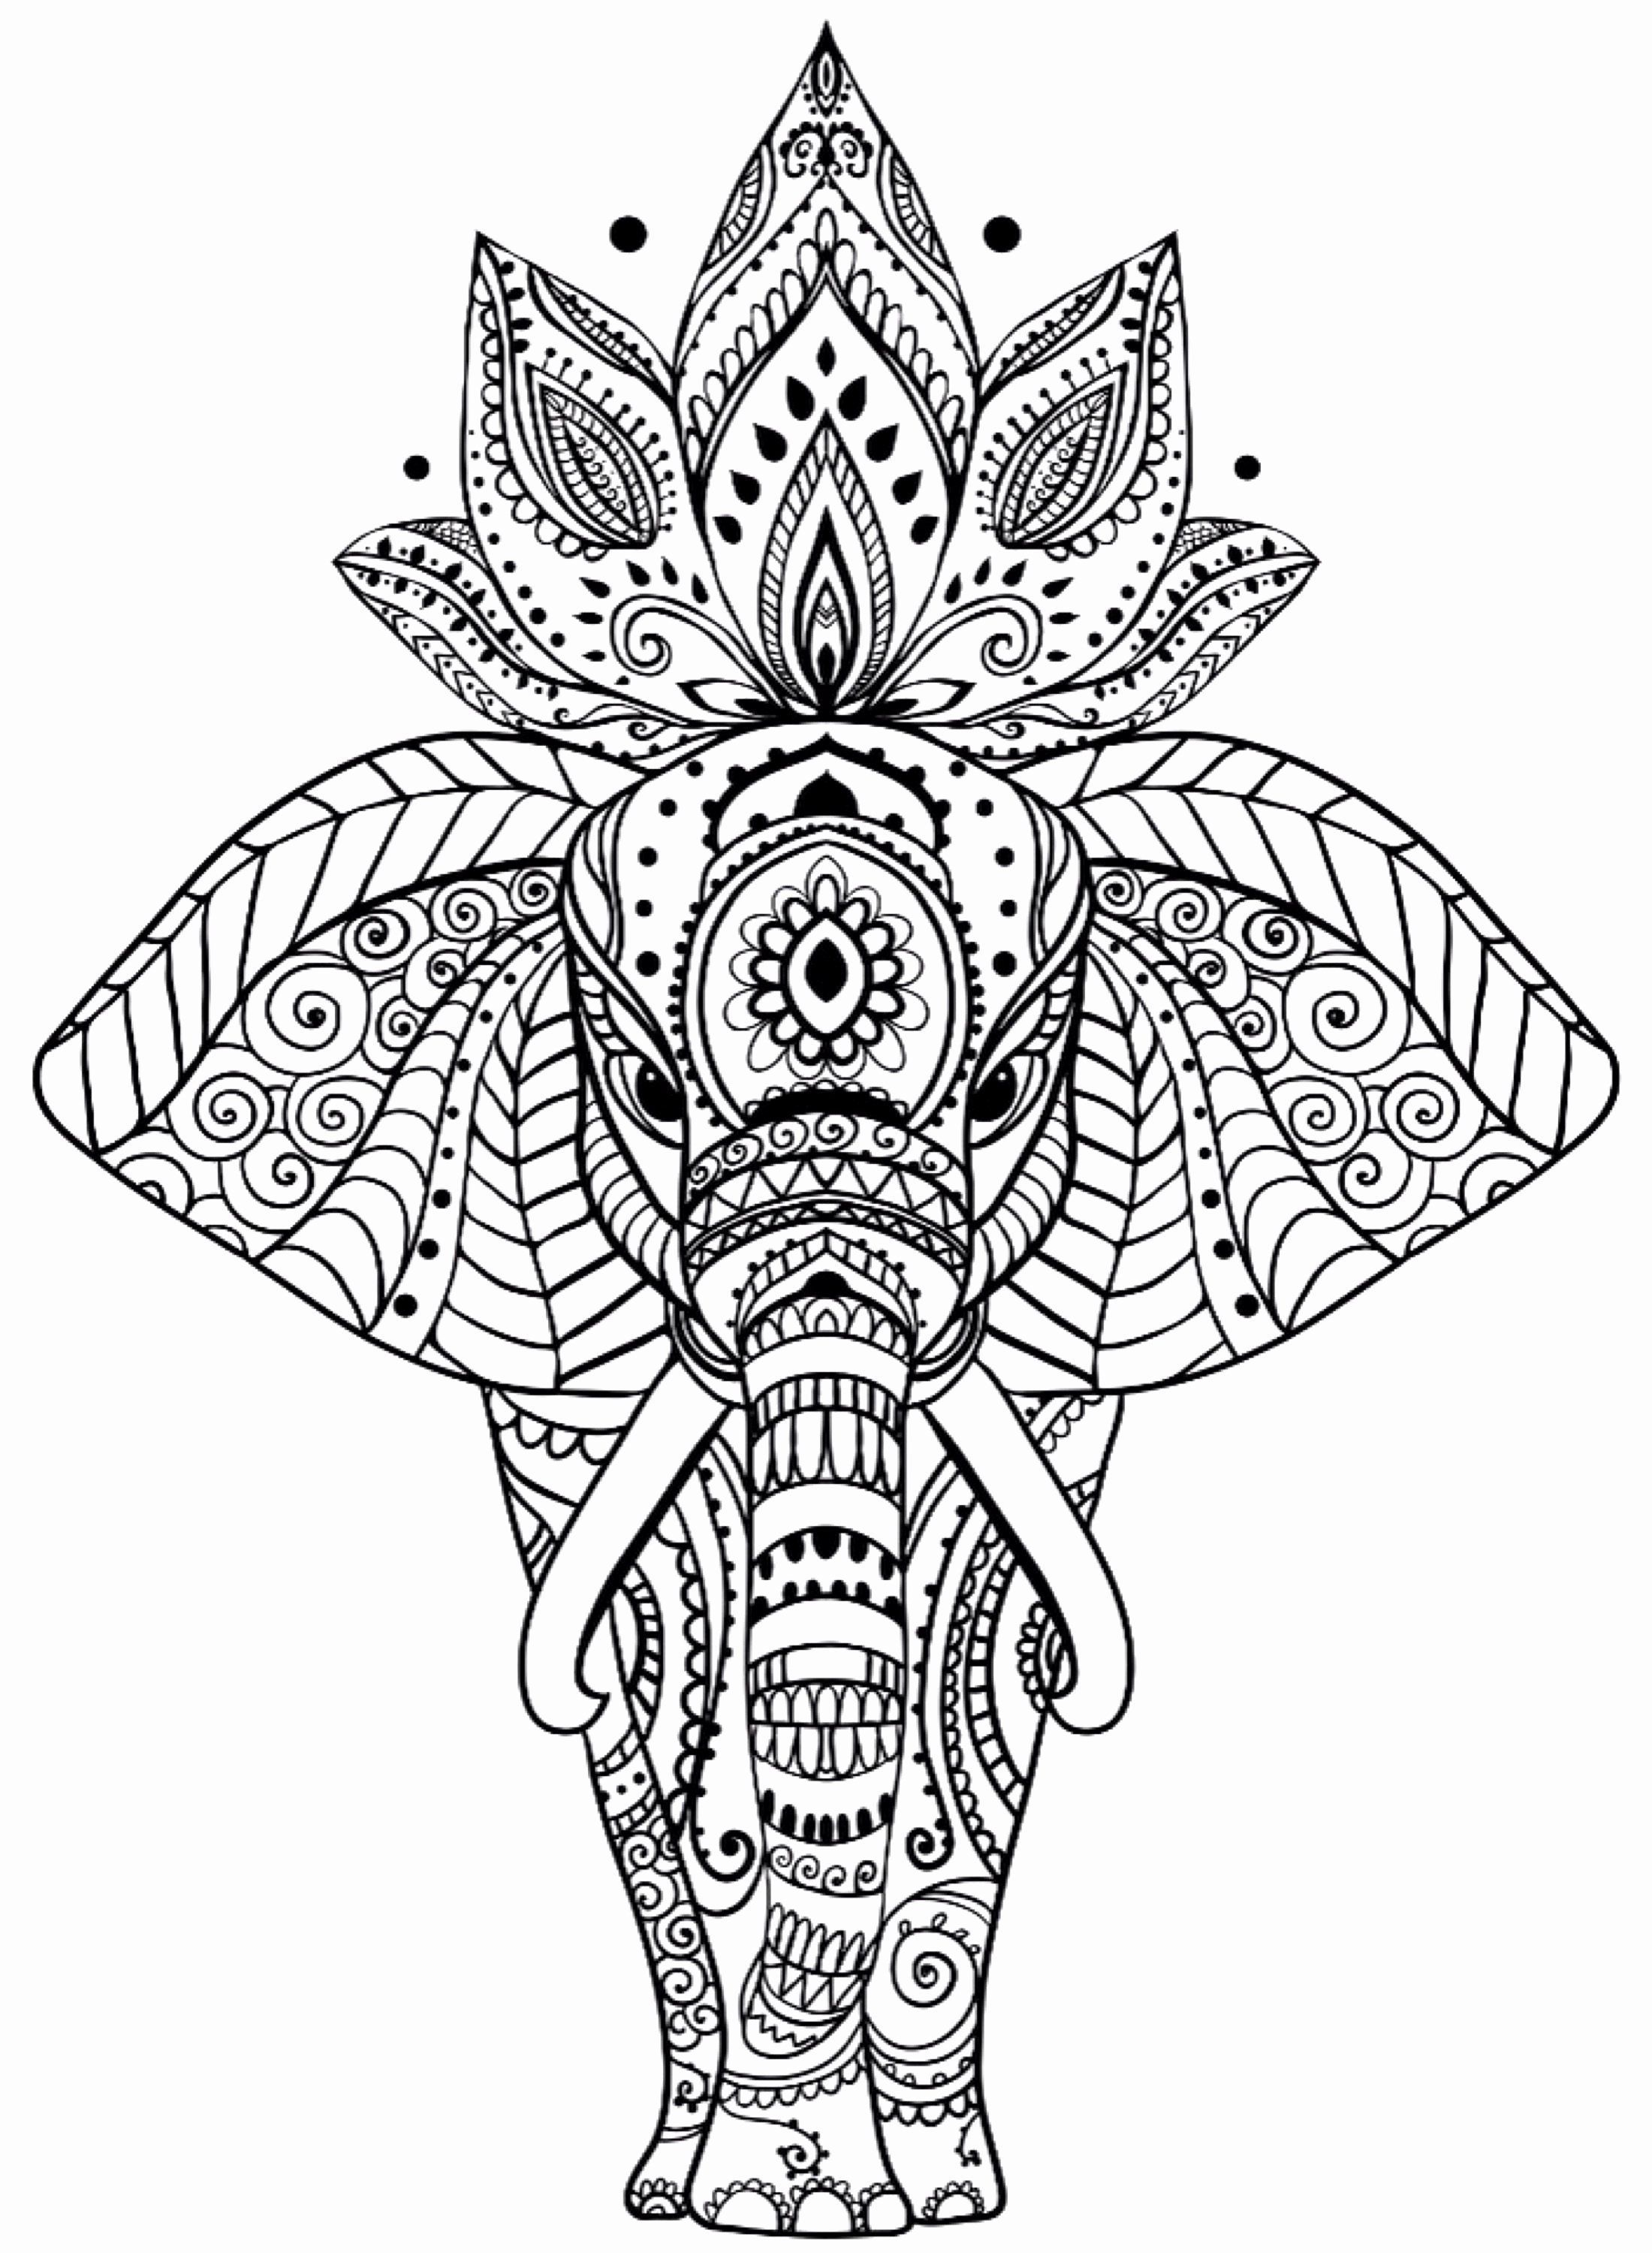 Tattoos Elephant Mandala Tattoos Elephant Mandala Coloring Pages Elephant Coloring Page Mandala Coloring